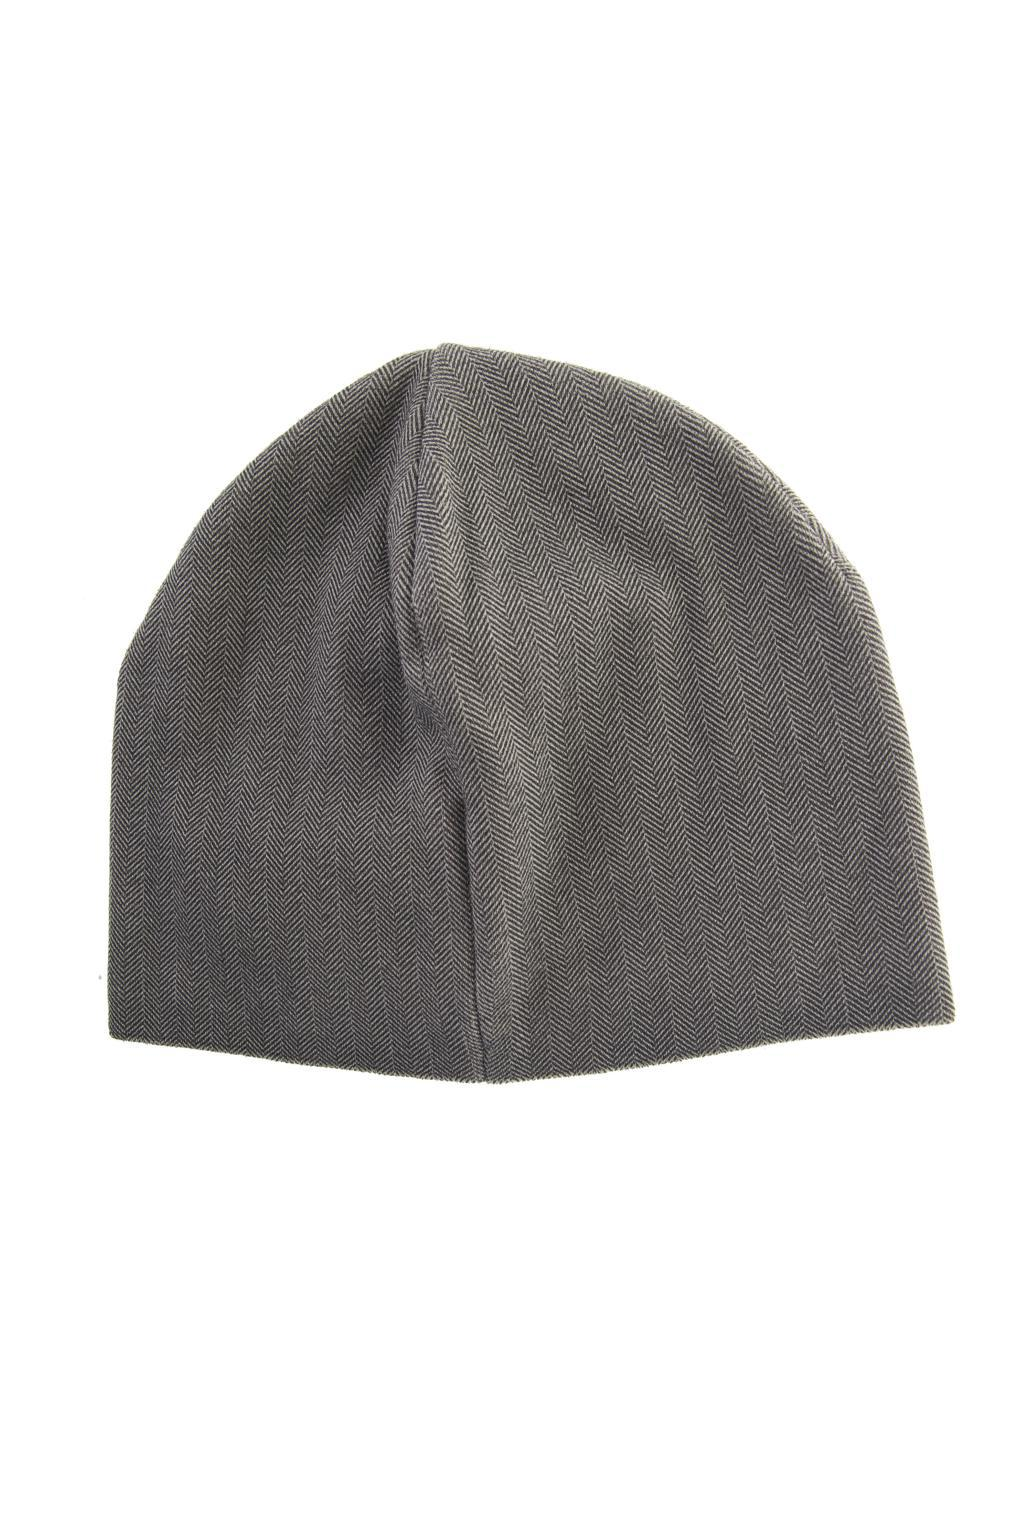 7d07aea1666 Emporio Armani - Gray Herringbone Pattern Hat for Men - Lyst. View  fullscreen